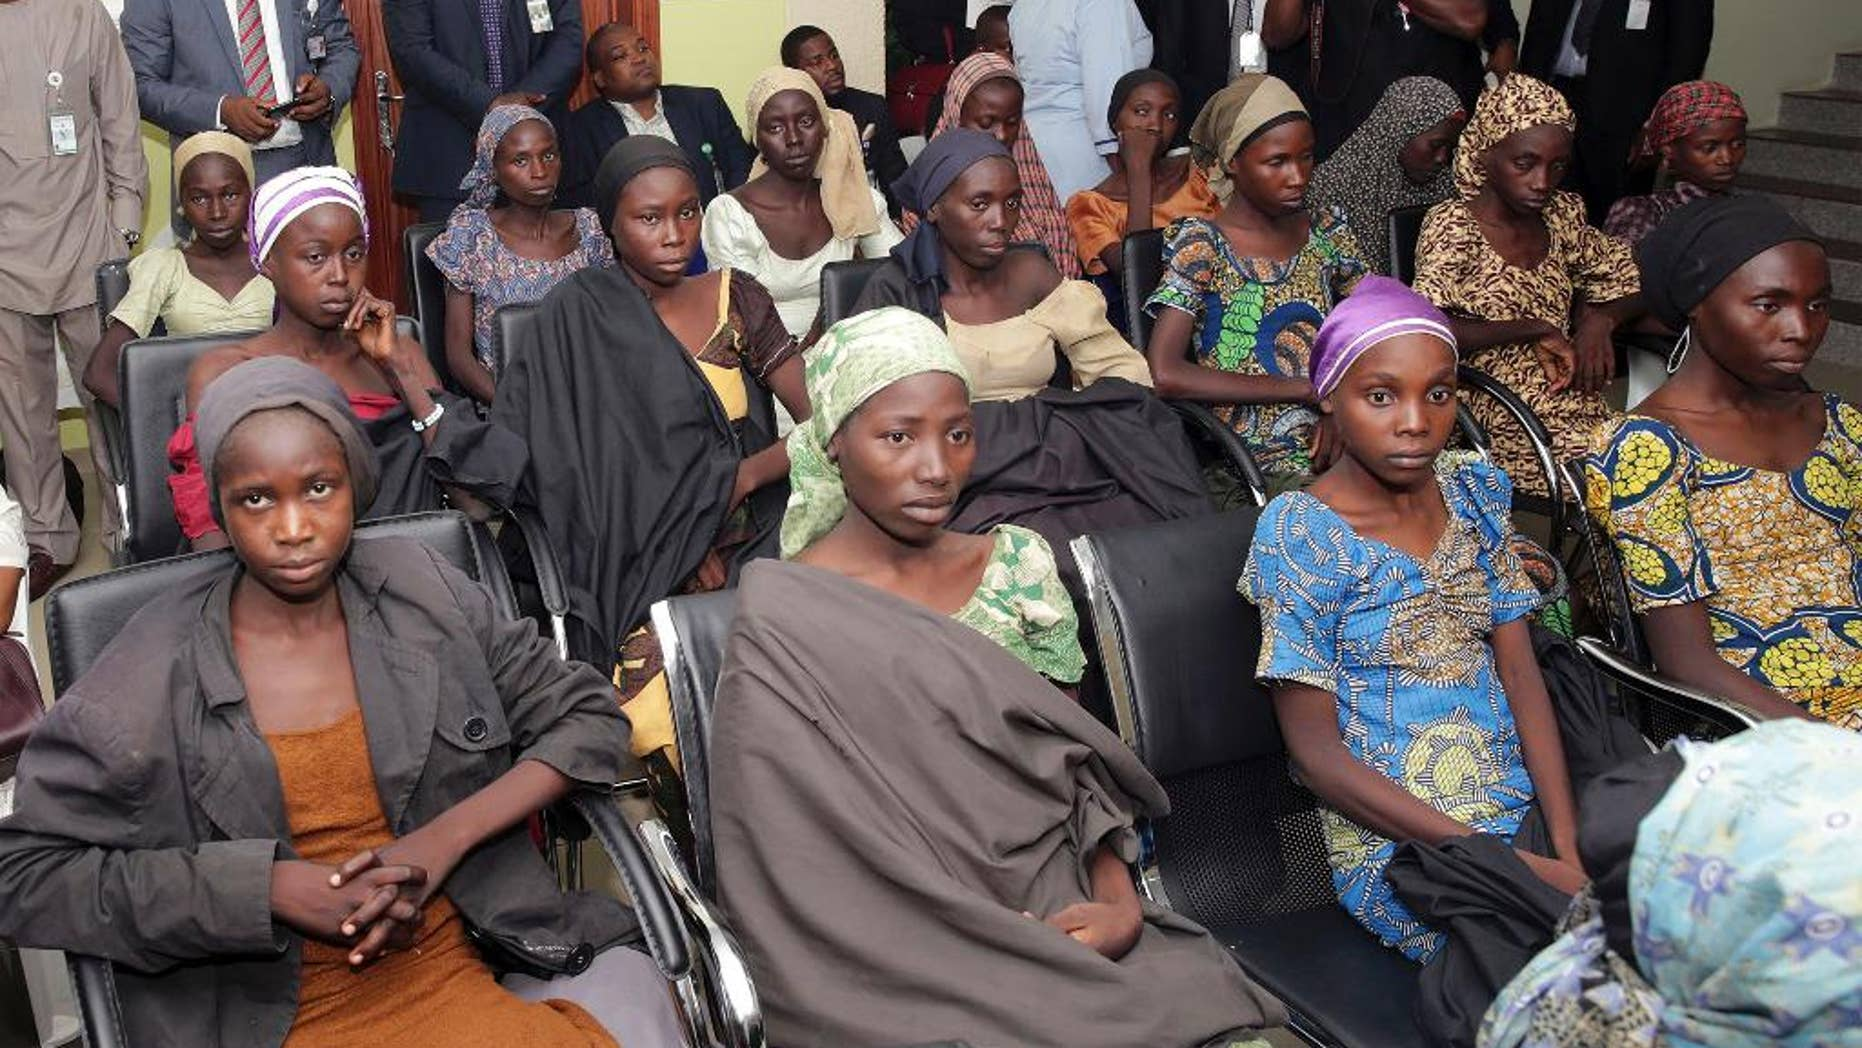 FILE - In this Thursday, Oct. 13, 2016 file photo released by the Nigeria State House, Chibok schoolgirls recently freed from Islamic extremist captivity are seen during a meeting with Nigeria's Vice President Yemi Osinbajo in Abuja, Nigeria. Large numbers of Chibok schoolgirls seized three years ago by Boko Haram have been freed in exchange for detained suspects with the extremist group, Nigeria's government announced early Sunday, May 7, 2017 in the largest release negotiated yet in the battle to save nearly 300 girls whose mass abduction exposed the mounting threat posed by the Islamic State-linked fighters. After the initial release of 21 Chibok girls in October, the government denied making an exchange or paying ransom. (Sunday Aghaeze/Nigeria State House via AP, File)